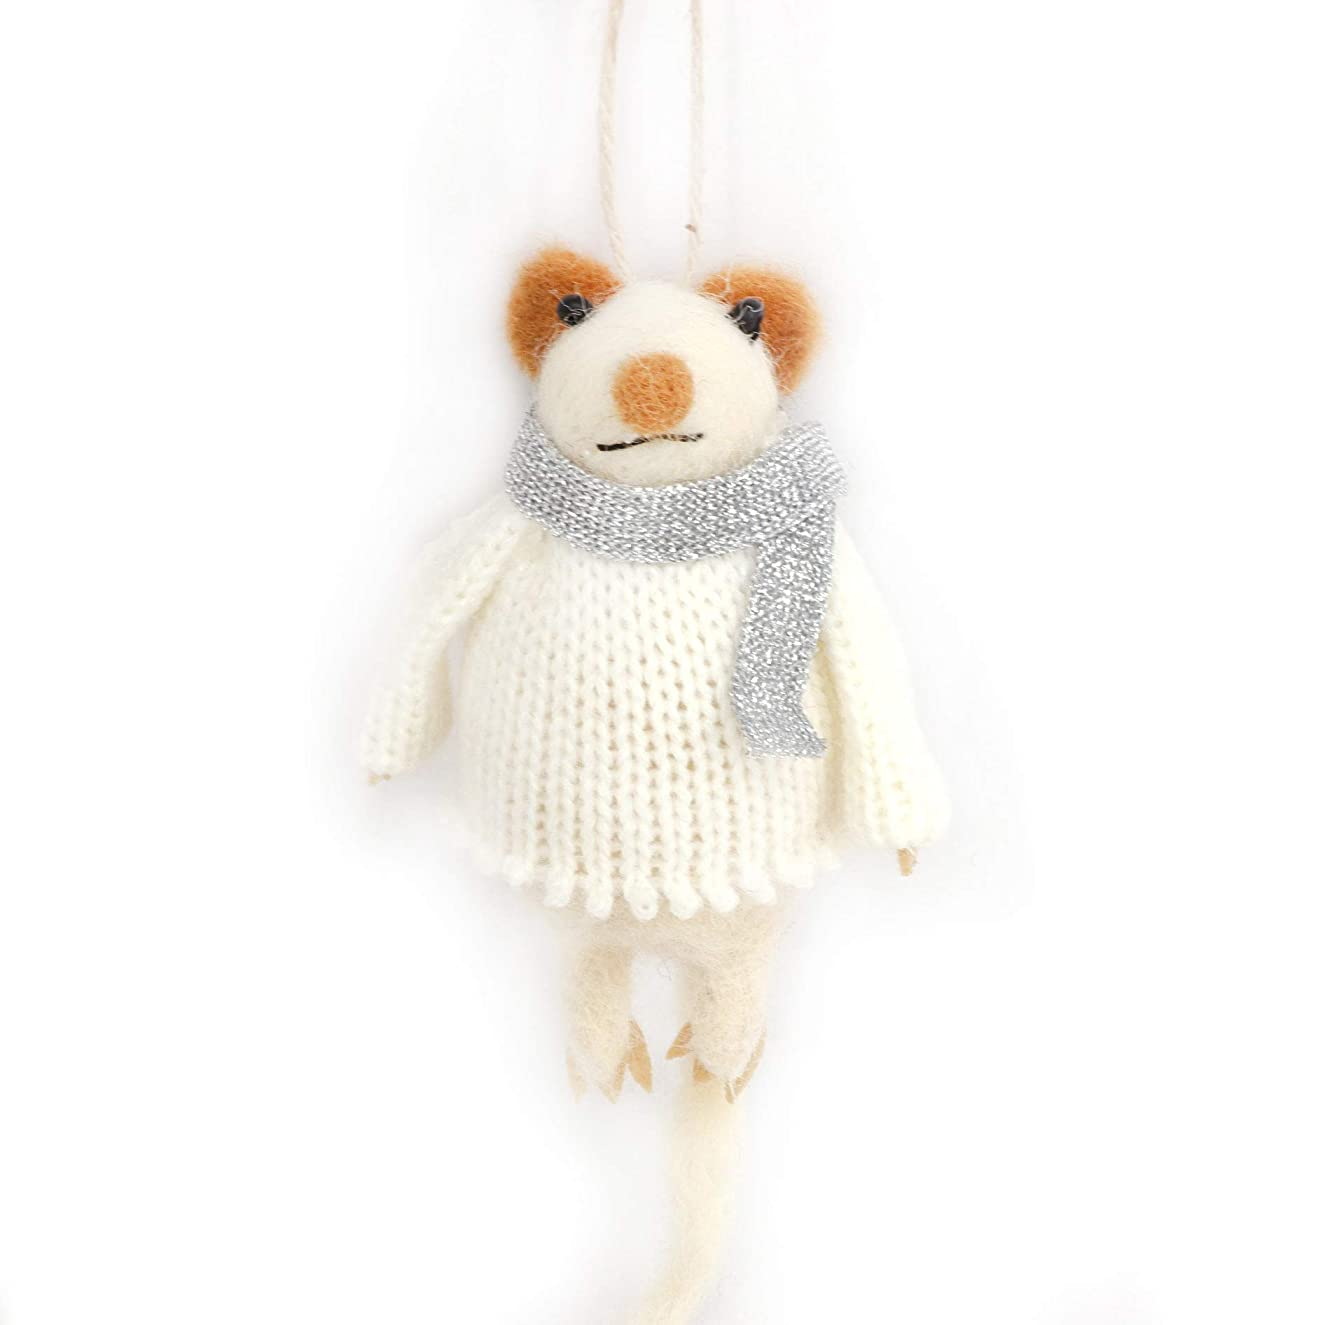 B & D Combined Inc. Stuffed Animals, Mouse,with White Knitting Sweater and Wearing Silver Scarf.